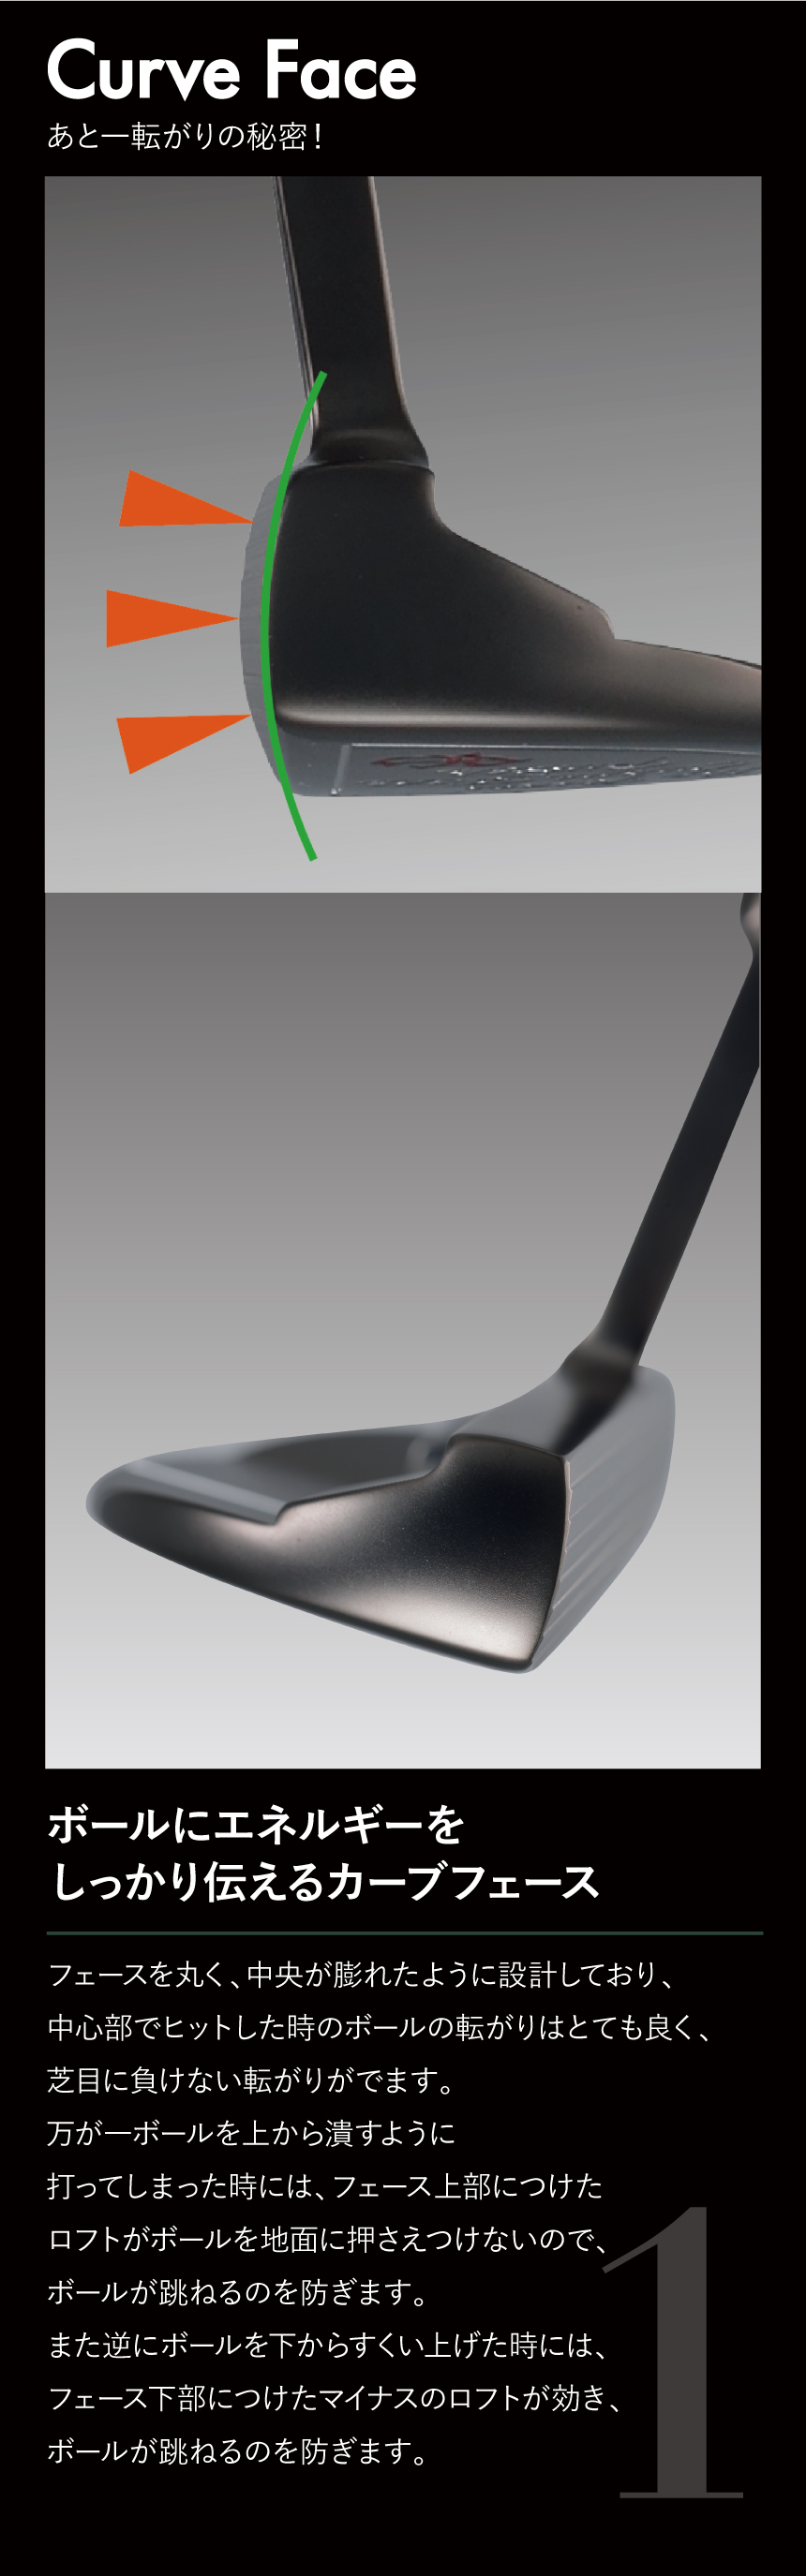 The Roots Curve Face Putter